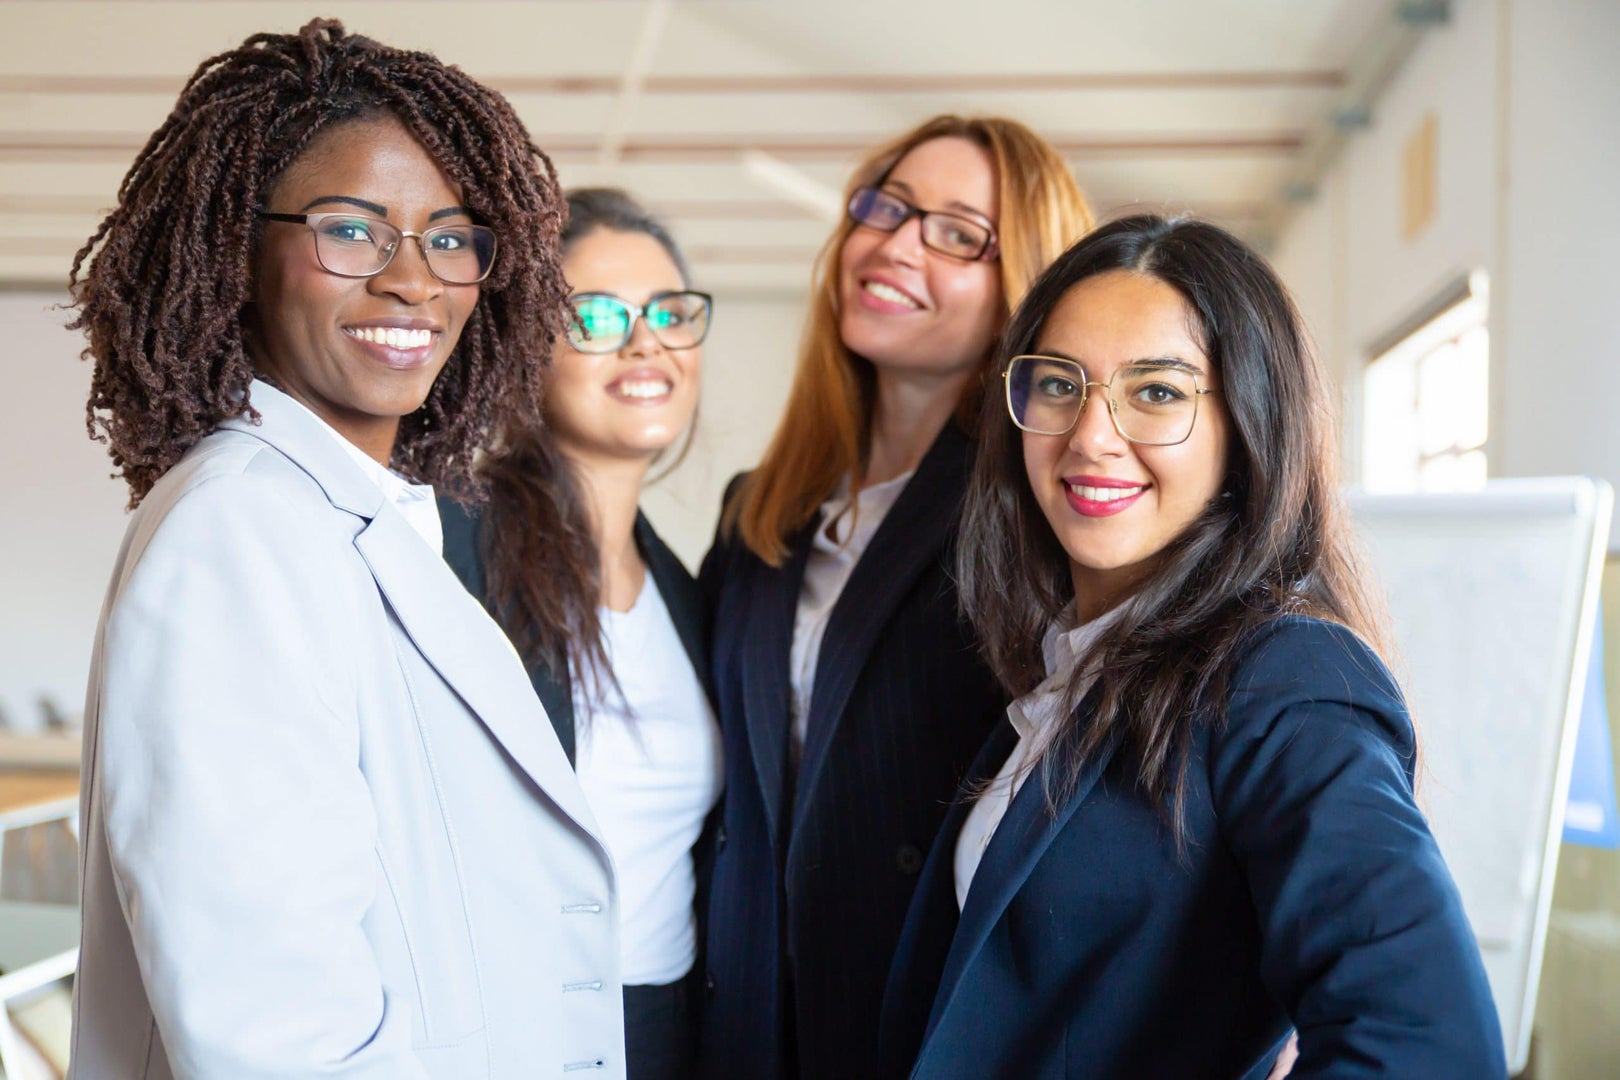 Group of confident young businesswomen looking at camera. Beautiful smiling women posing. Female confidence concept